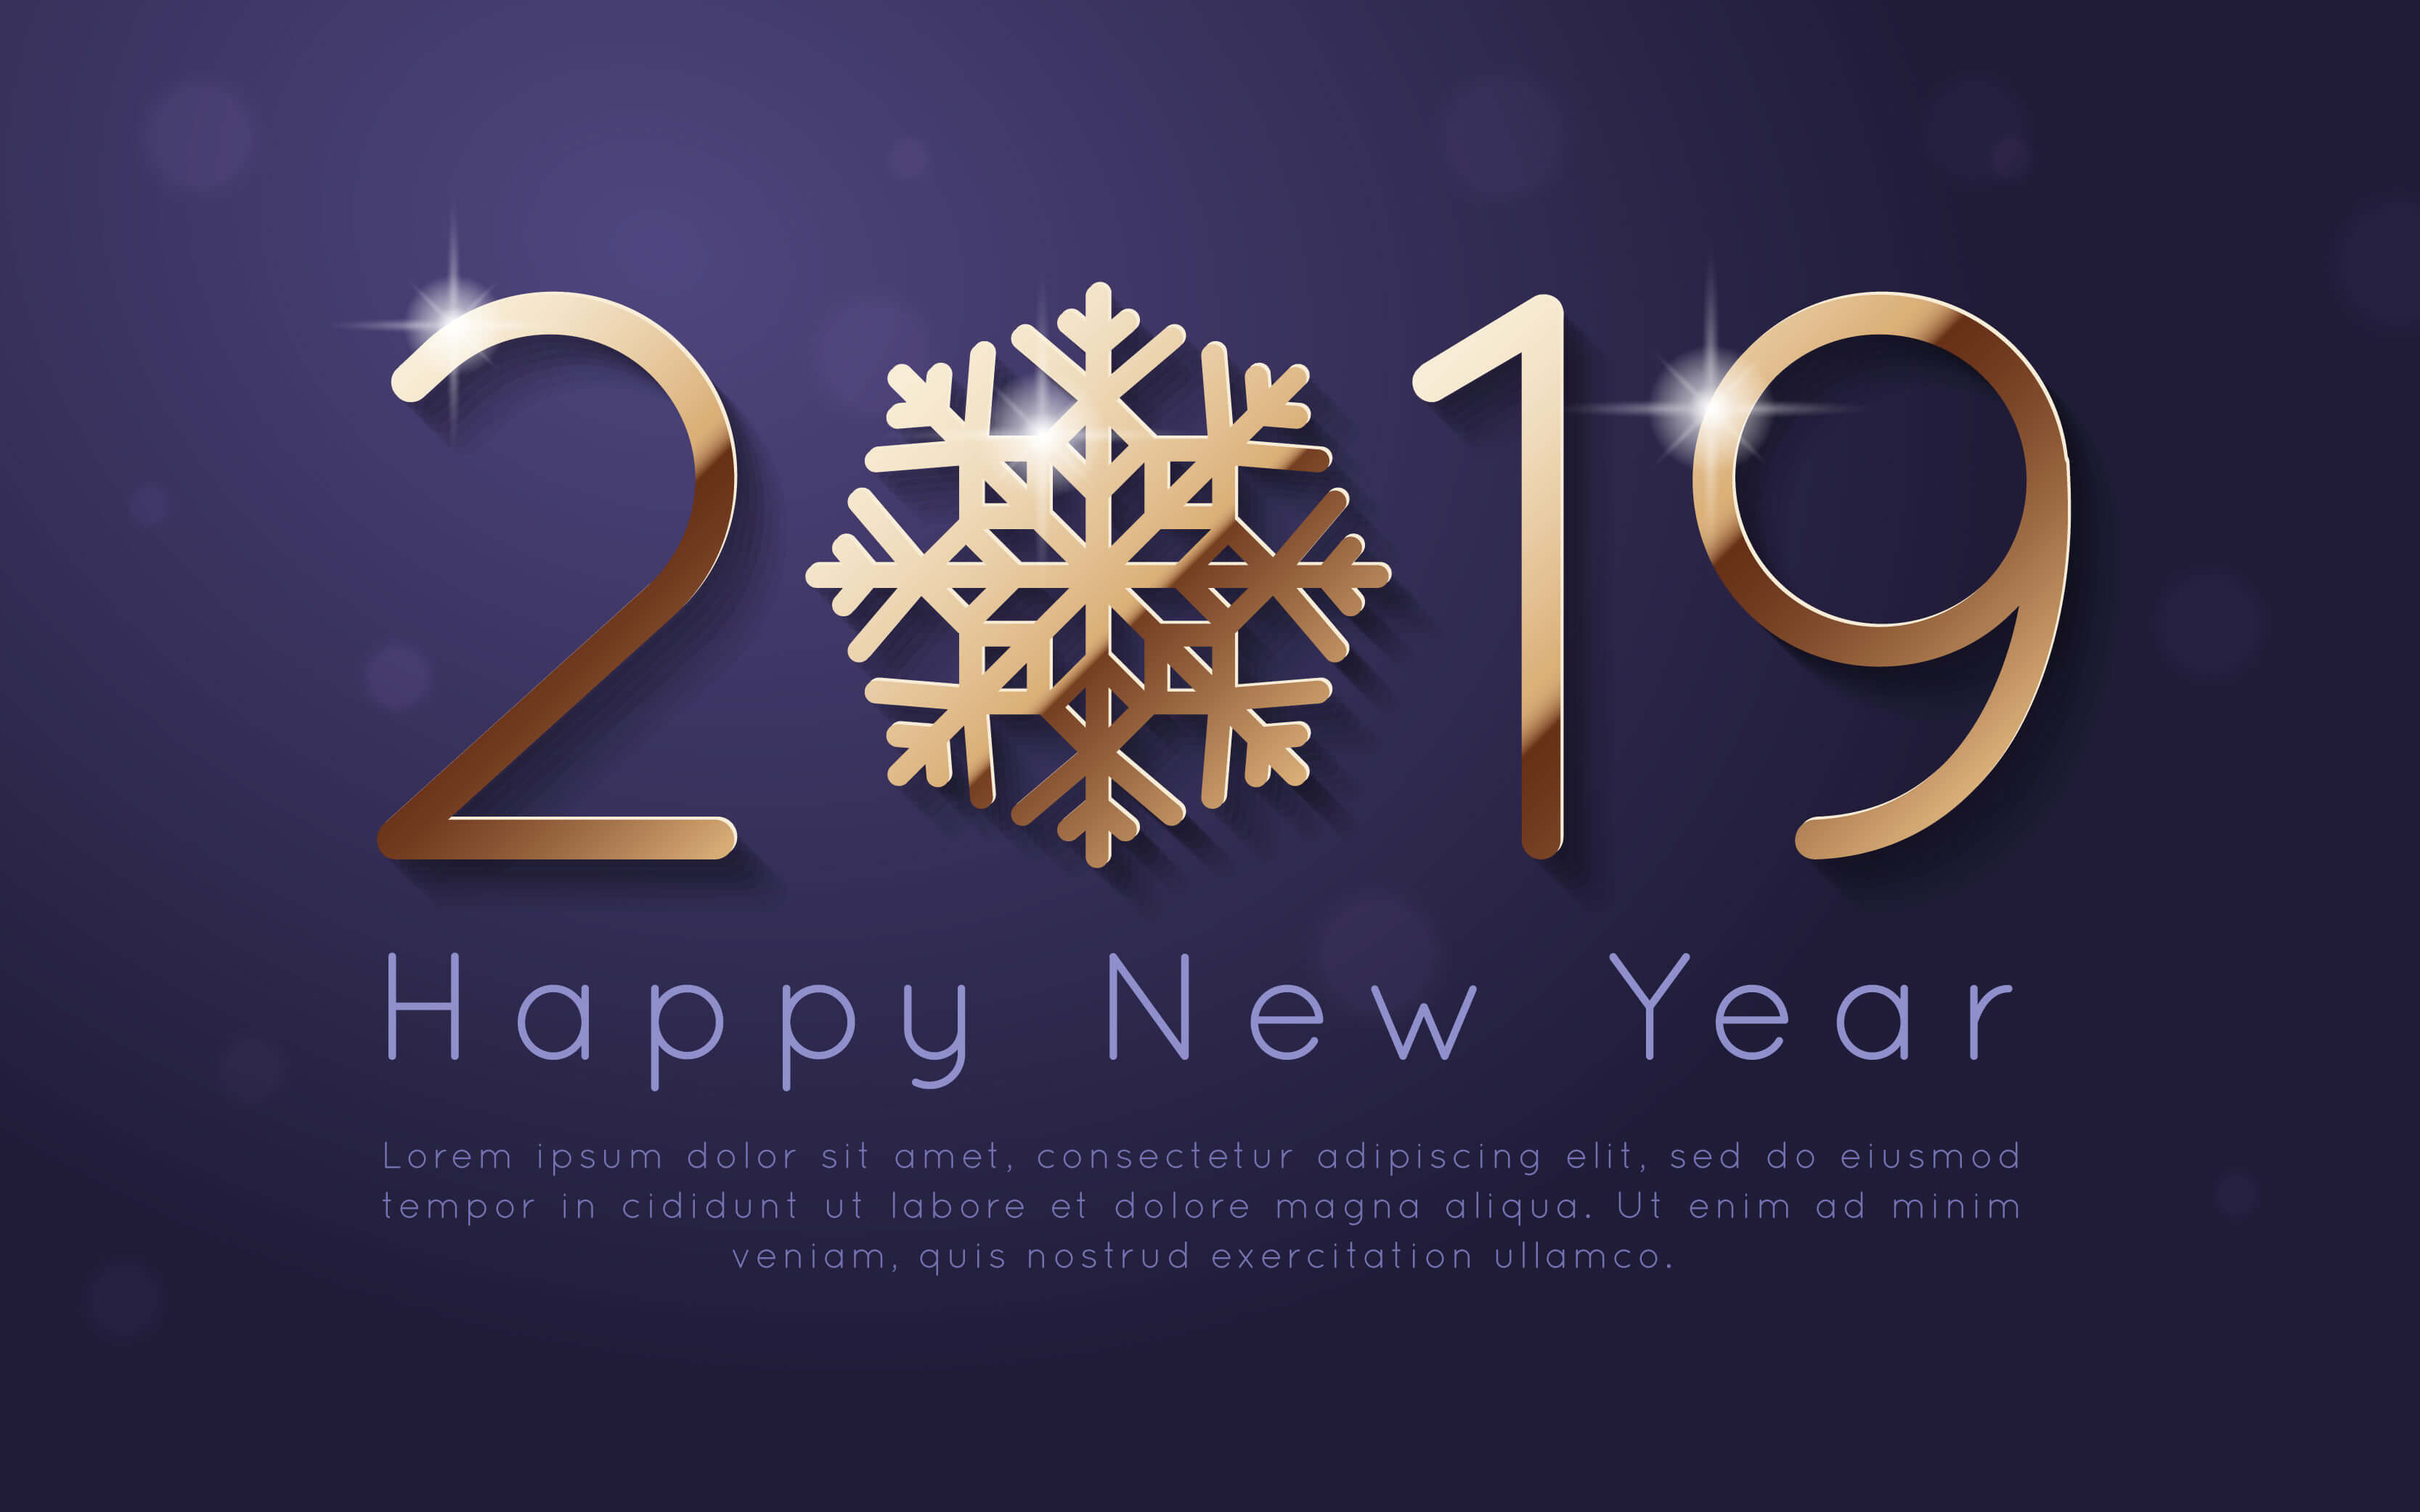 Happy New Year Wallpapers - New Year 2019 Design , HD Wallpaper & Backgrounds